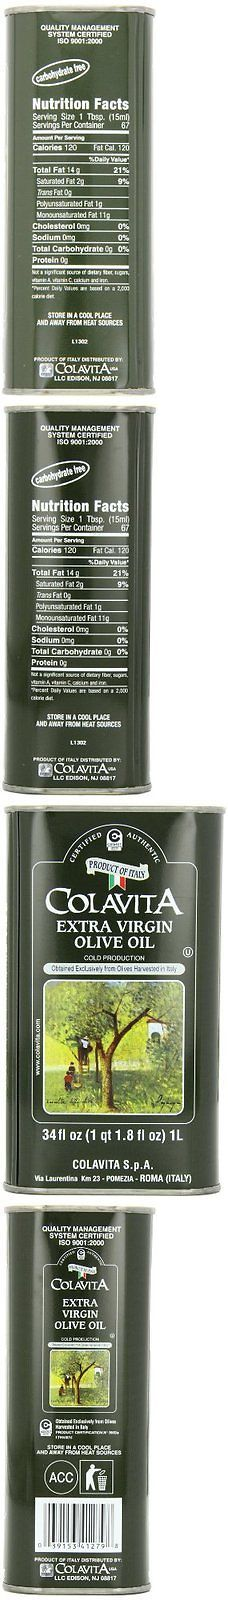 Oils 134646: Colavita Extra Virgin Olive Oil, 34-Ounce Tins Pack Of 2 -> BUY IT NOW ONLY: $38.82 on eBay!